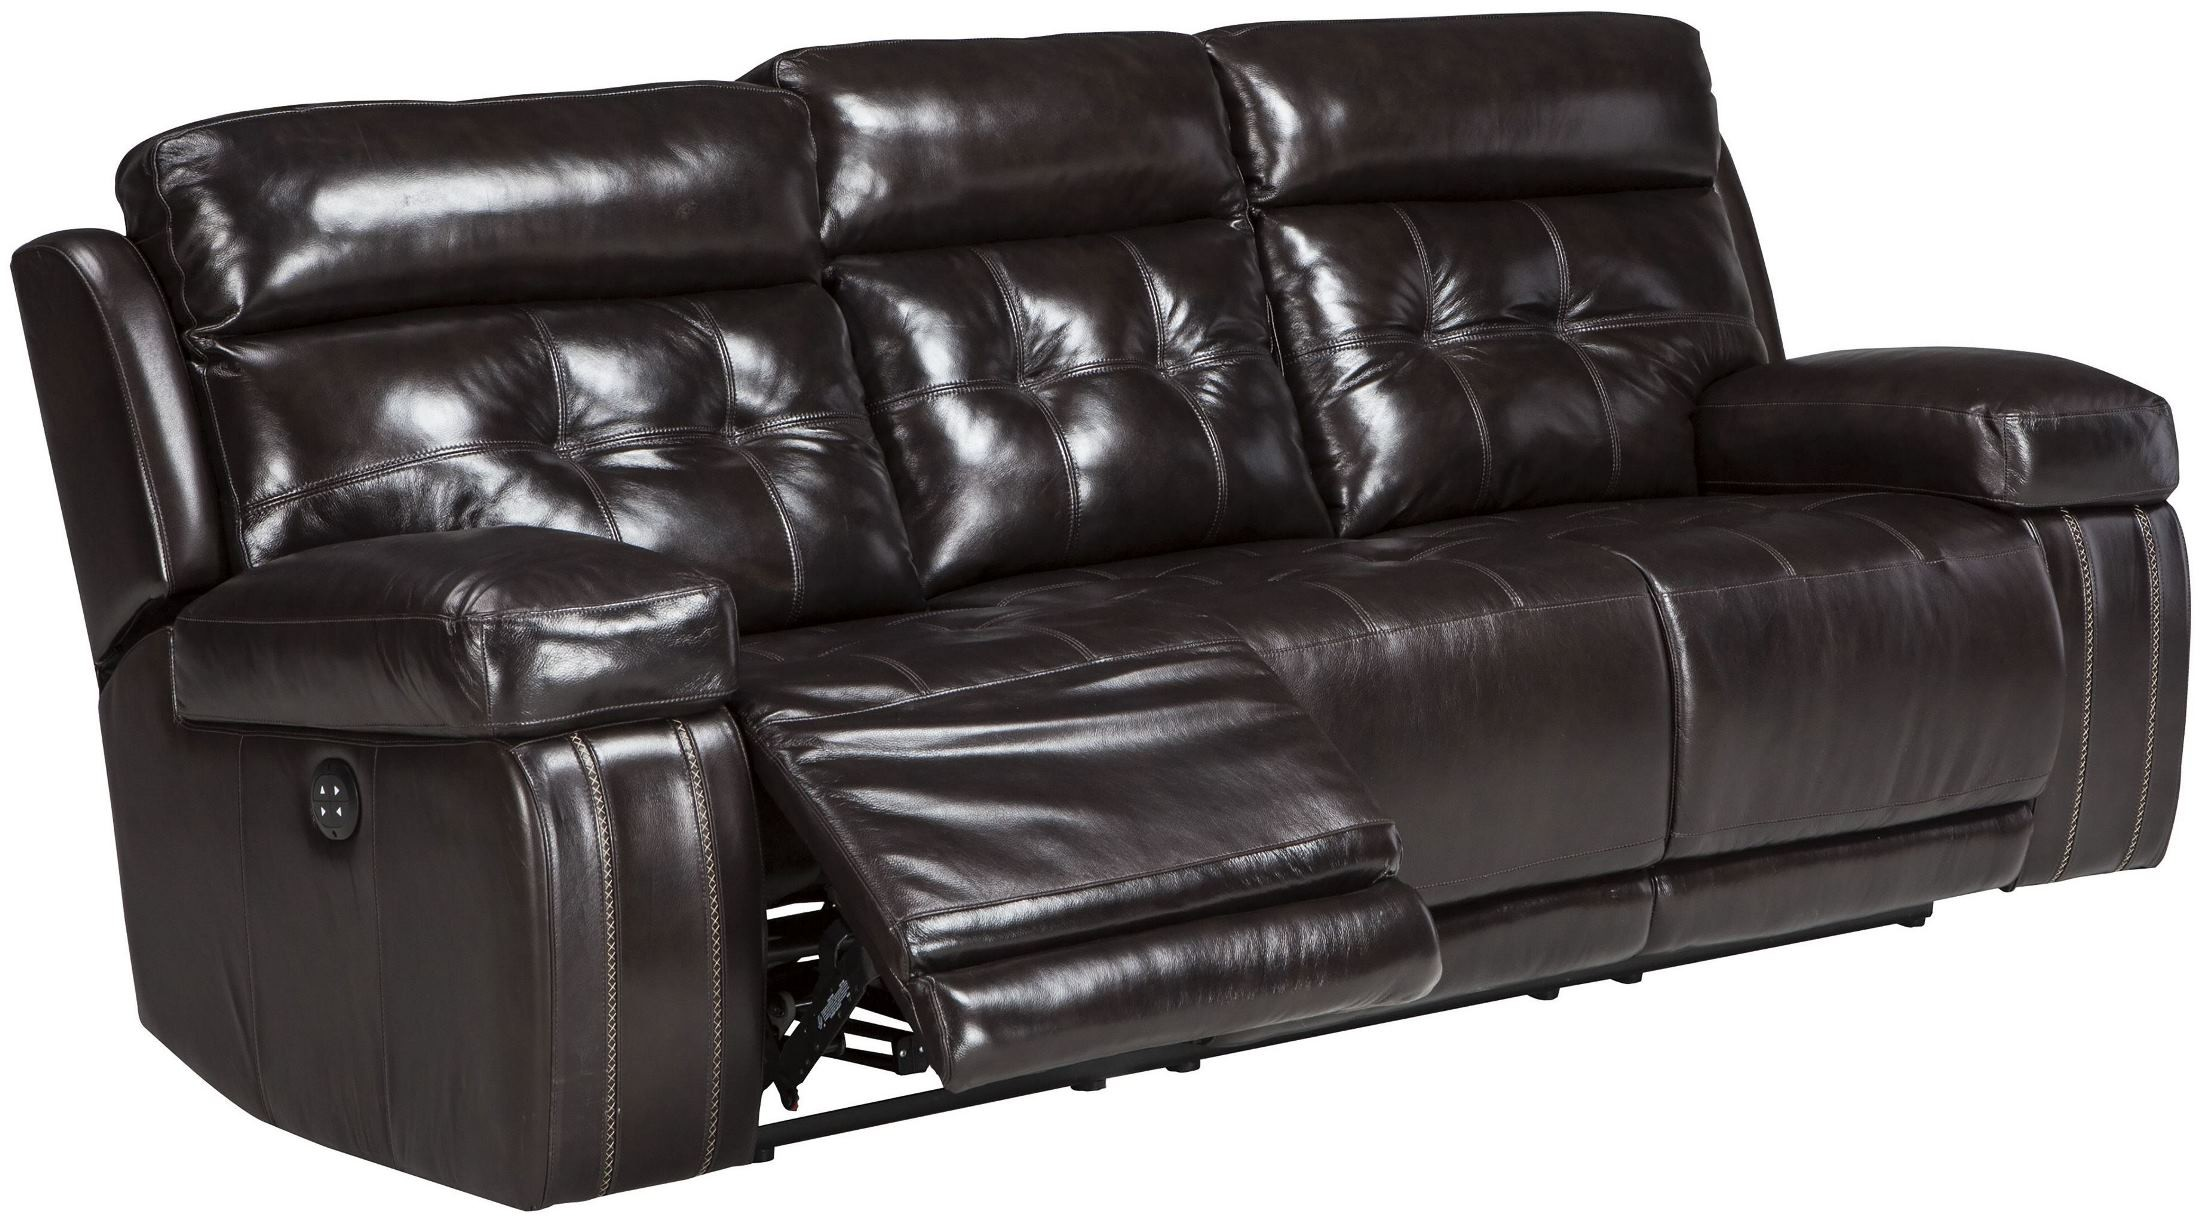 Graford Walnut Power Reclining Sofa With Adjustable